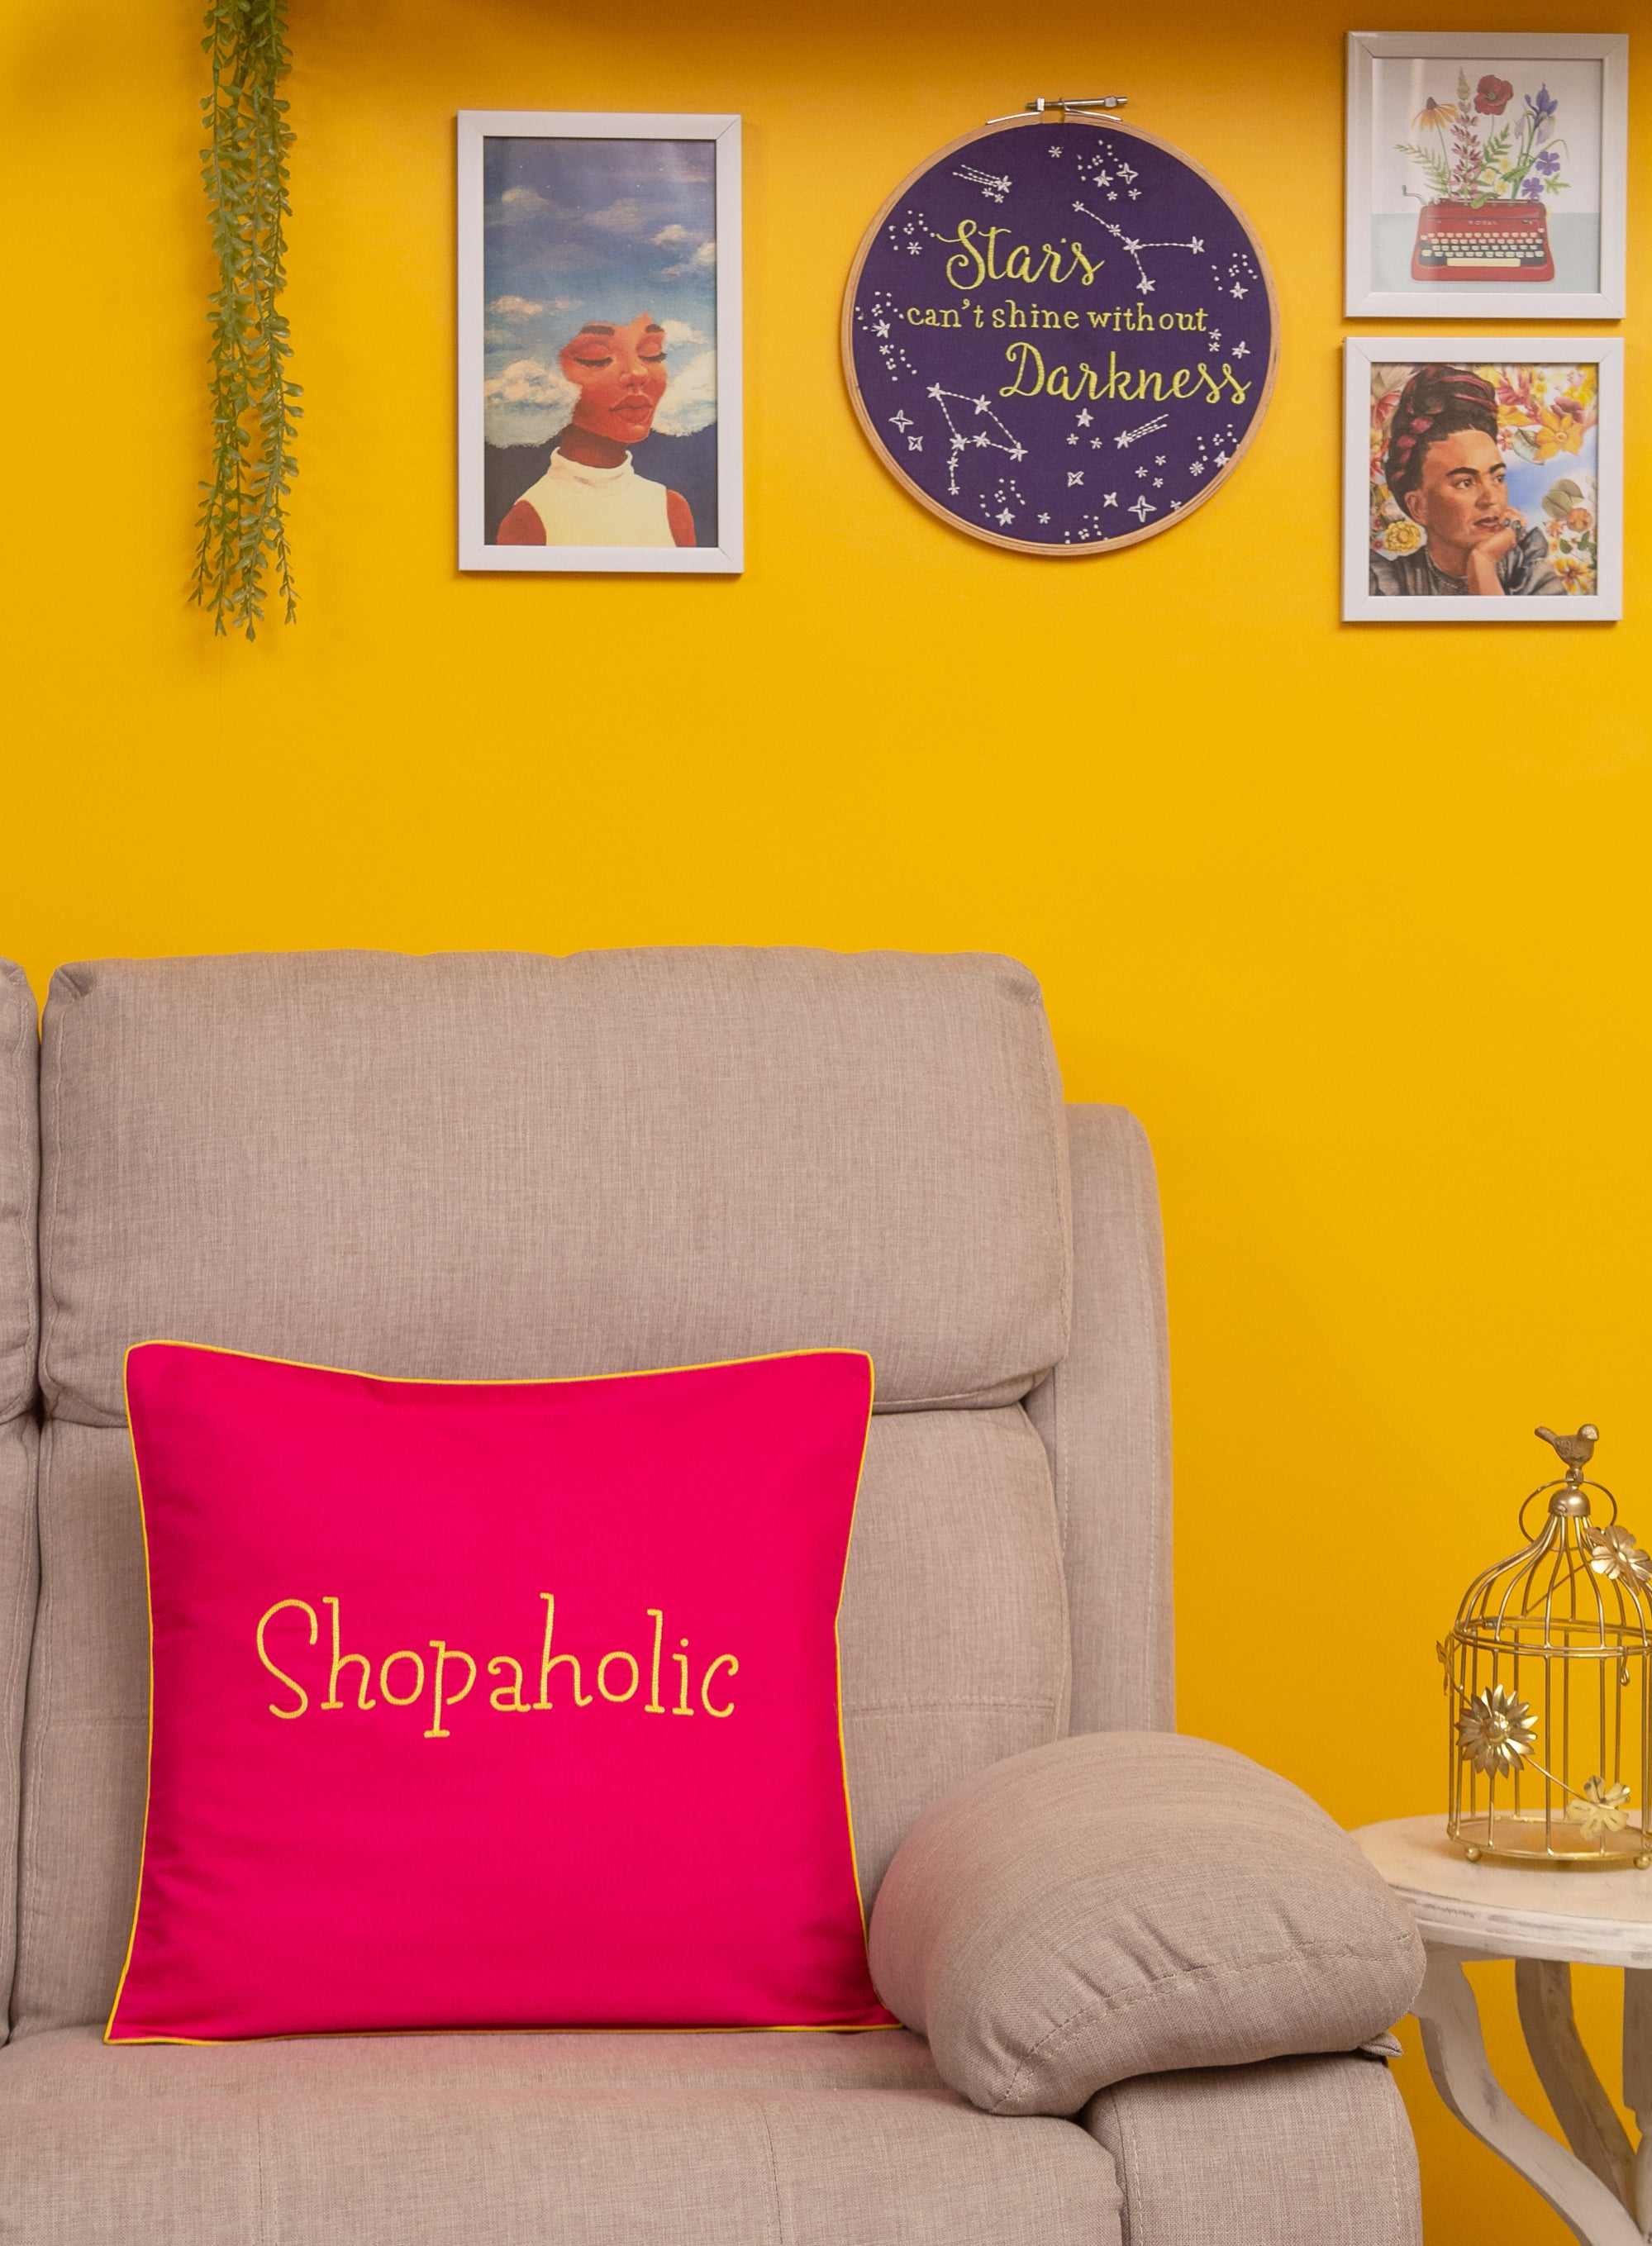 Shopaholic Cushion Cover